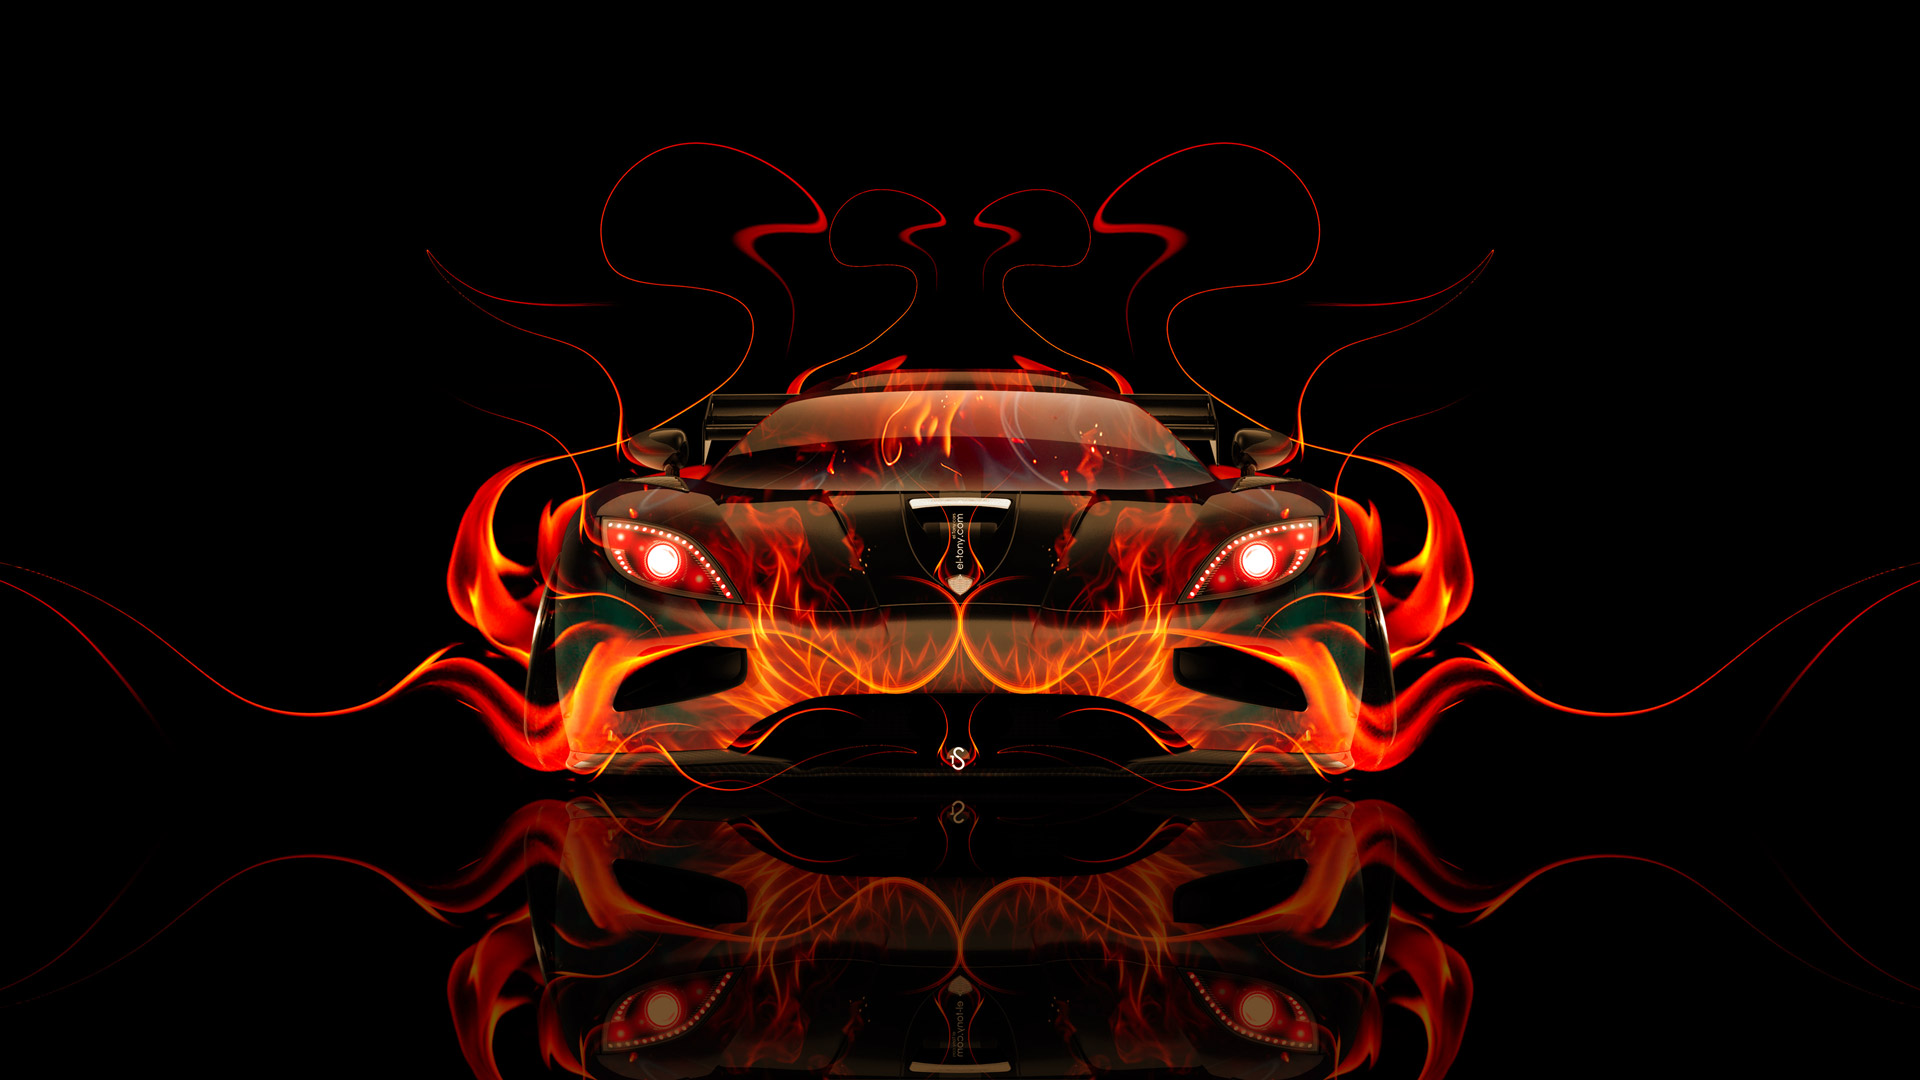 Exceptionnel Koenigsegg Agera Front Fire Abstract Car 2014 HD